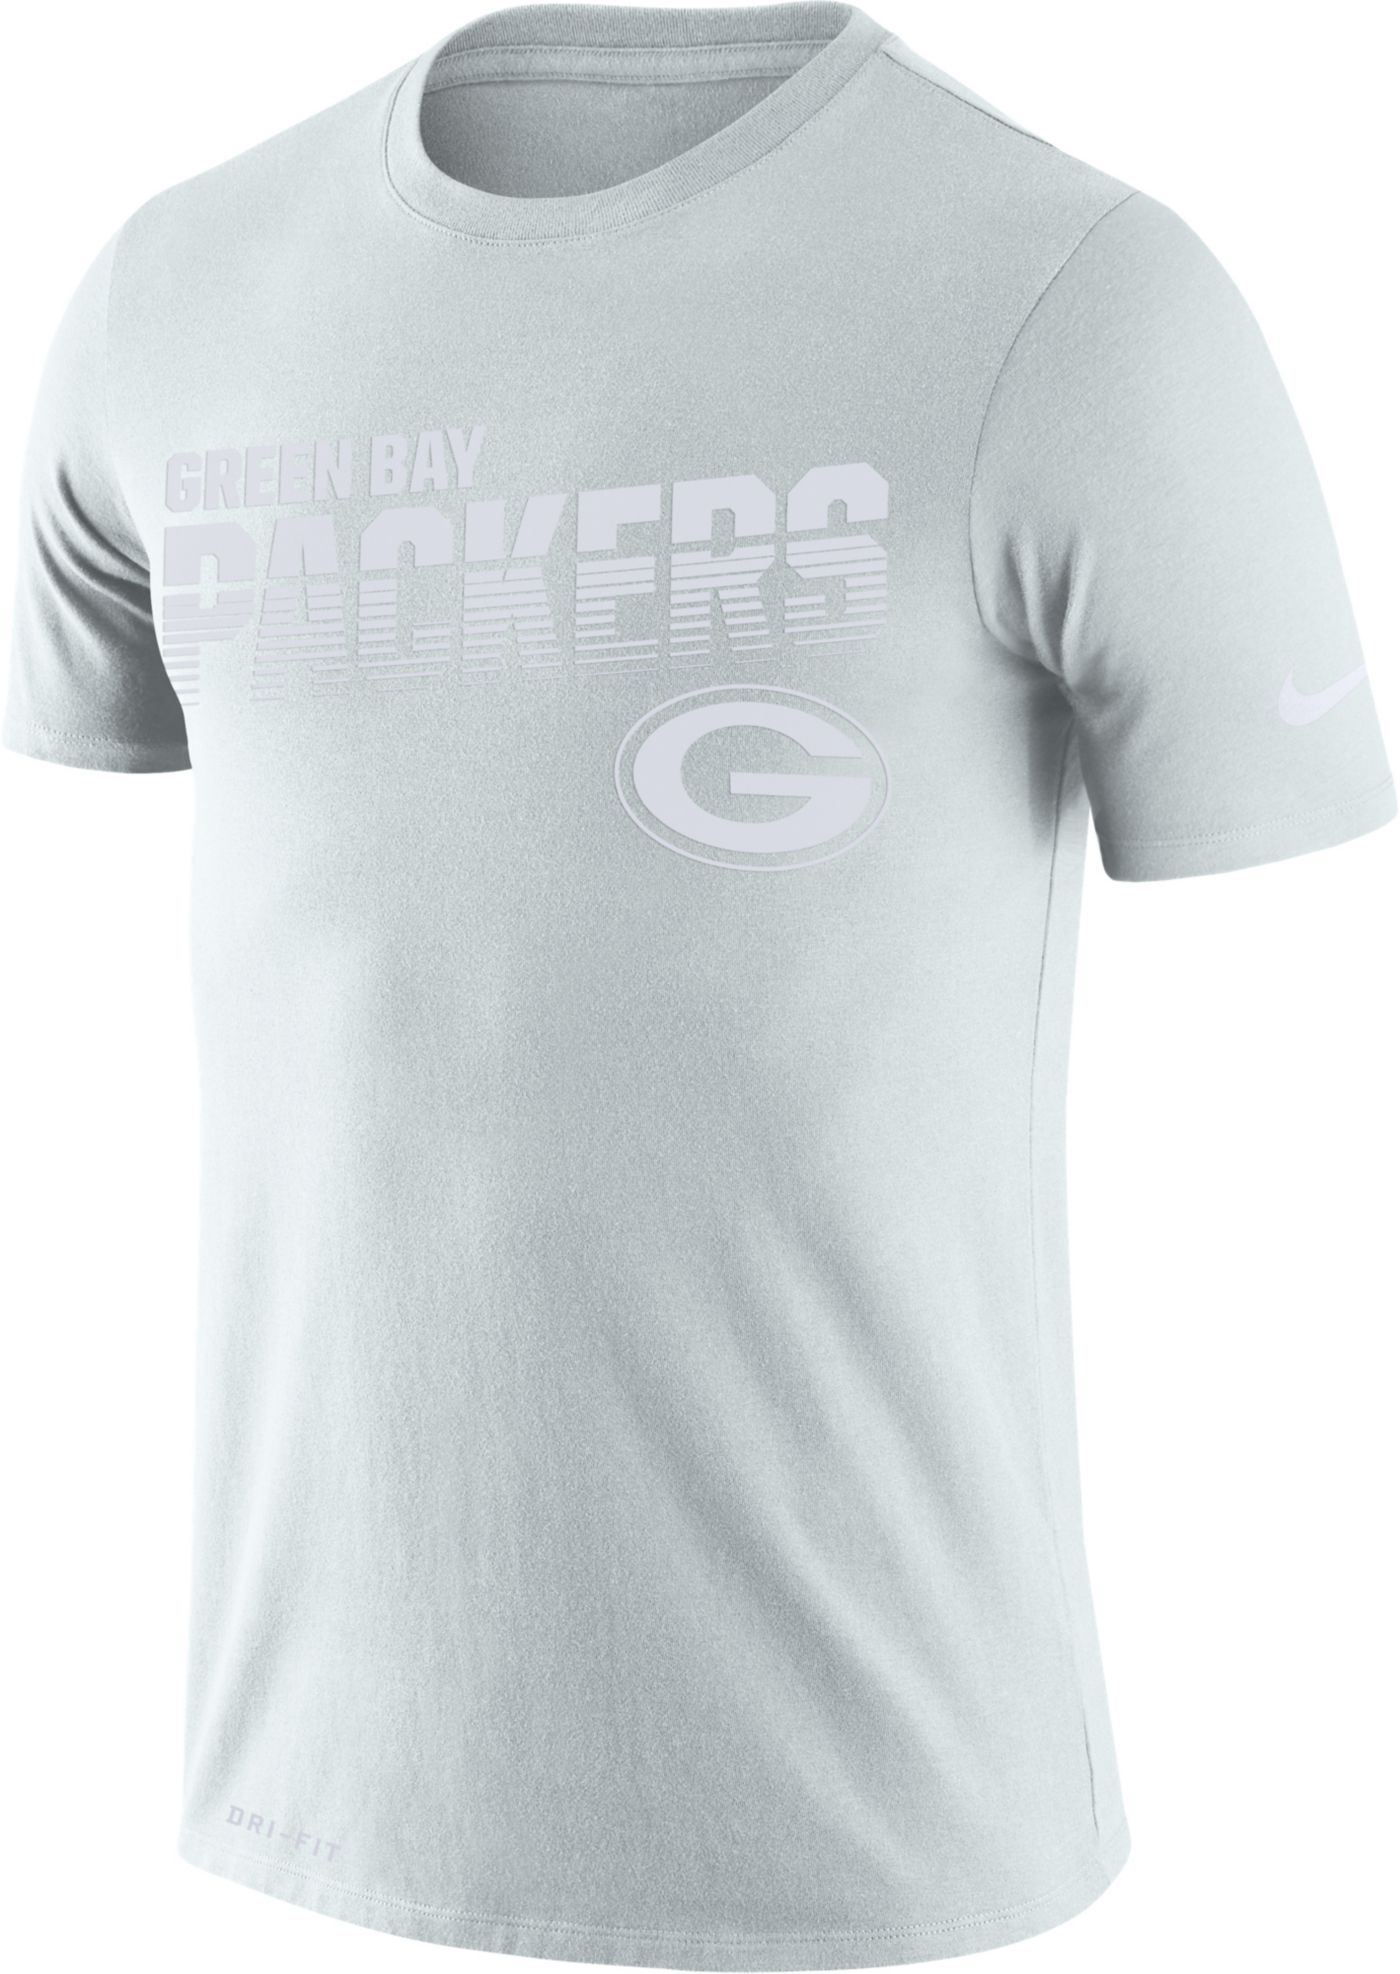 Nike Men's Green Bay Packers 100th Sideline Legend Performance White T-Shirt